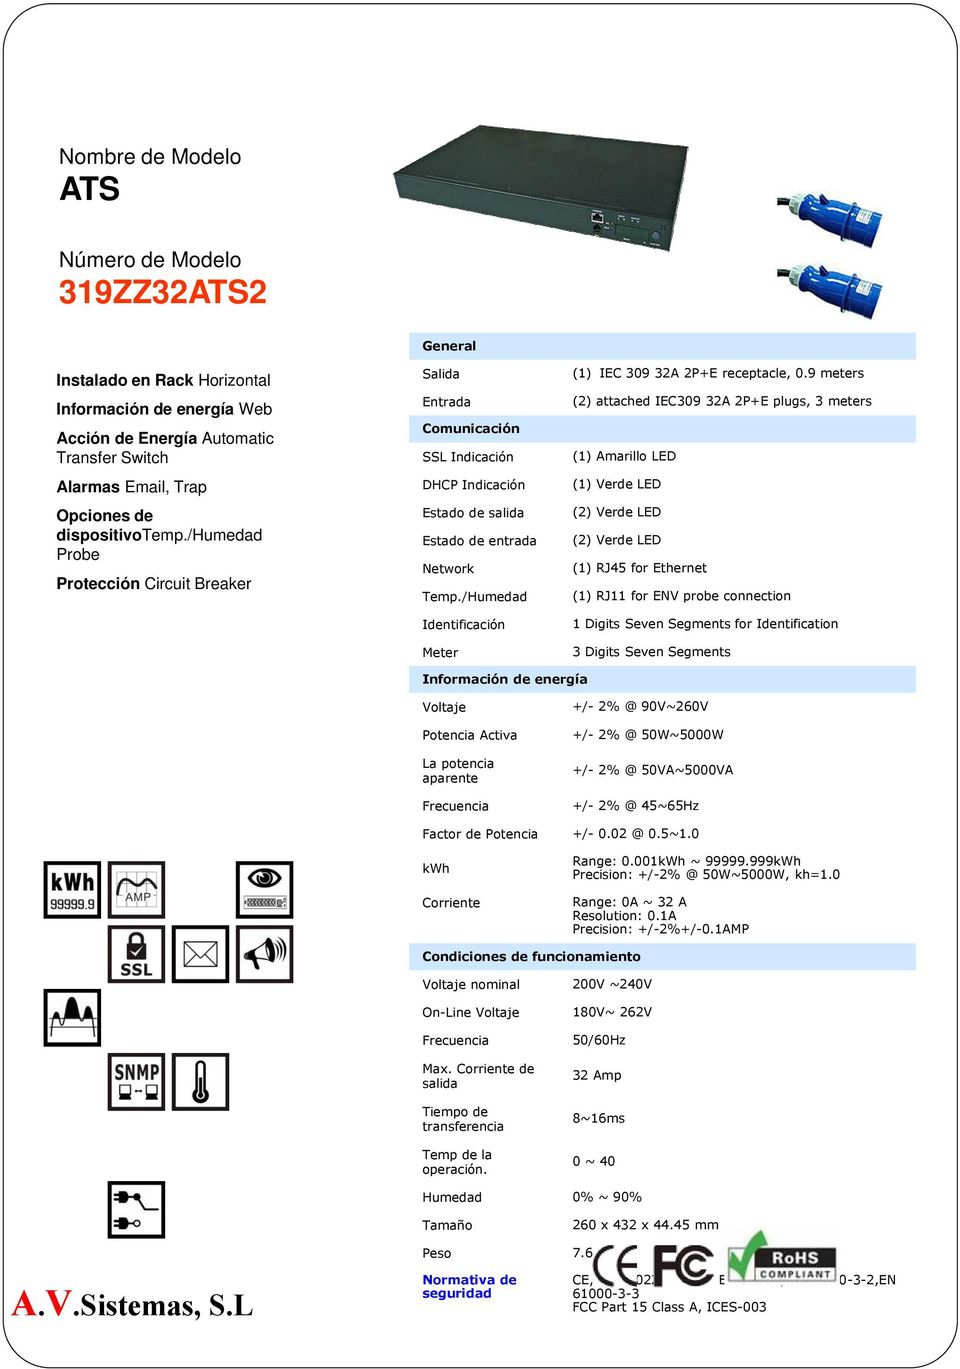 9 meters (2) attached IEC309 32A 2P+E plugs, 3 meters (2) Verde LED (2) Verde LED (1) RJ45 for Ethernet (1) RJ11 for ENV probe connection 1 Digits Seven Segments for Identification 3 Digits Seven